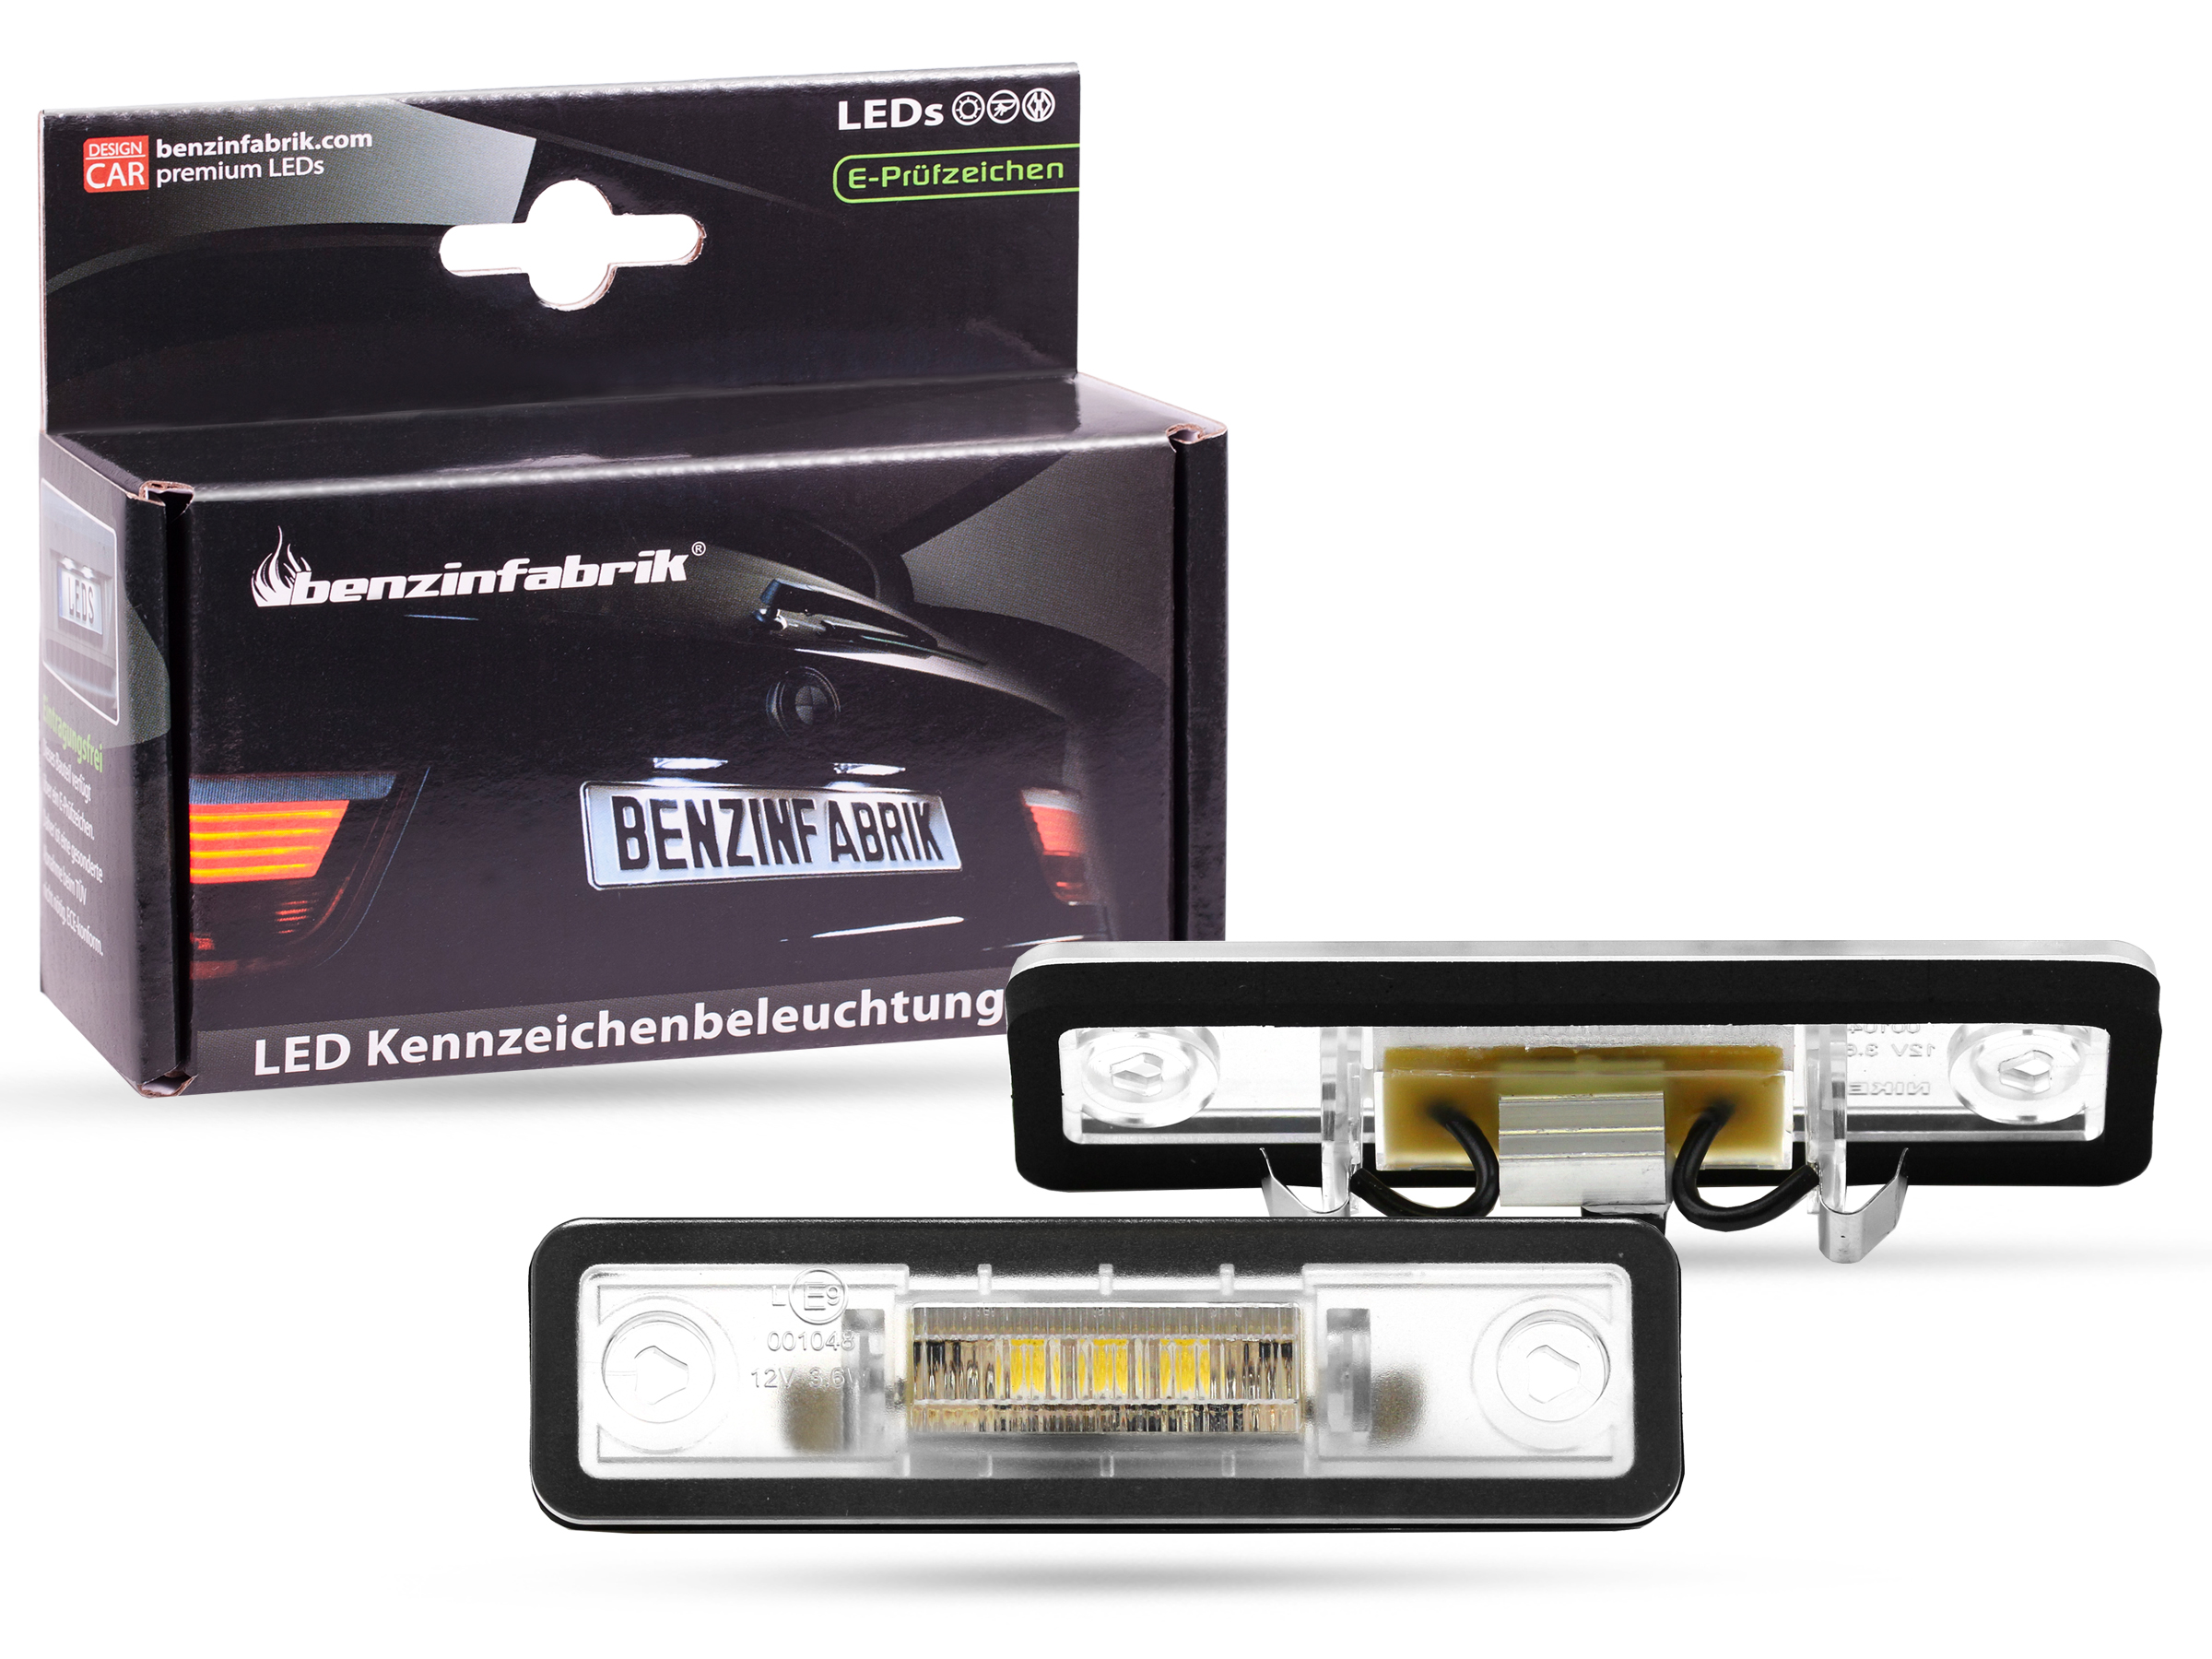 led kennzeichenbeleuchtung module opel zafira a mit e. Black Bedroom Furniture Sets. Home Design Ideas